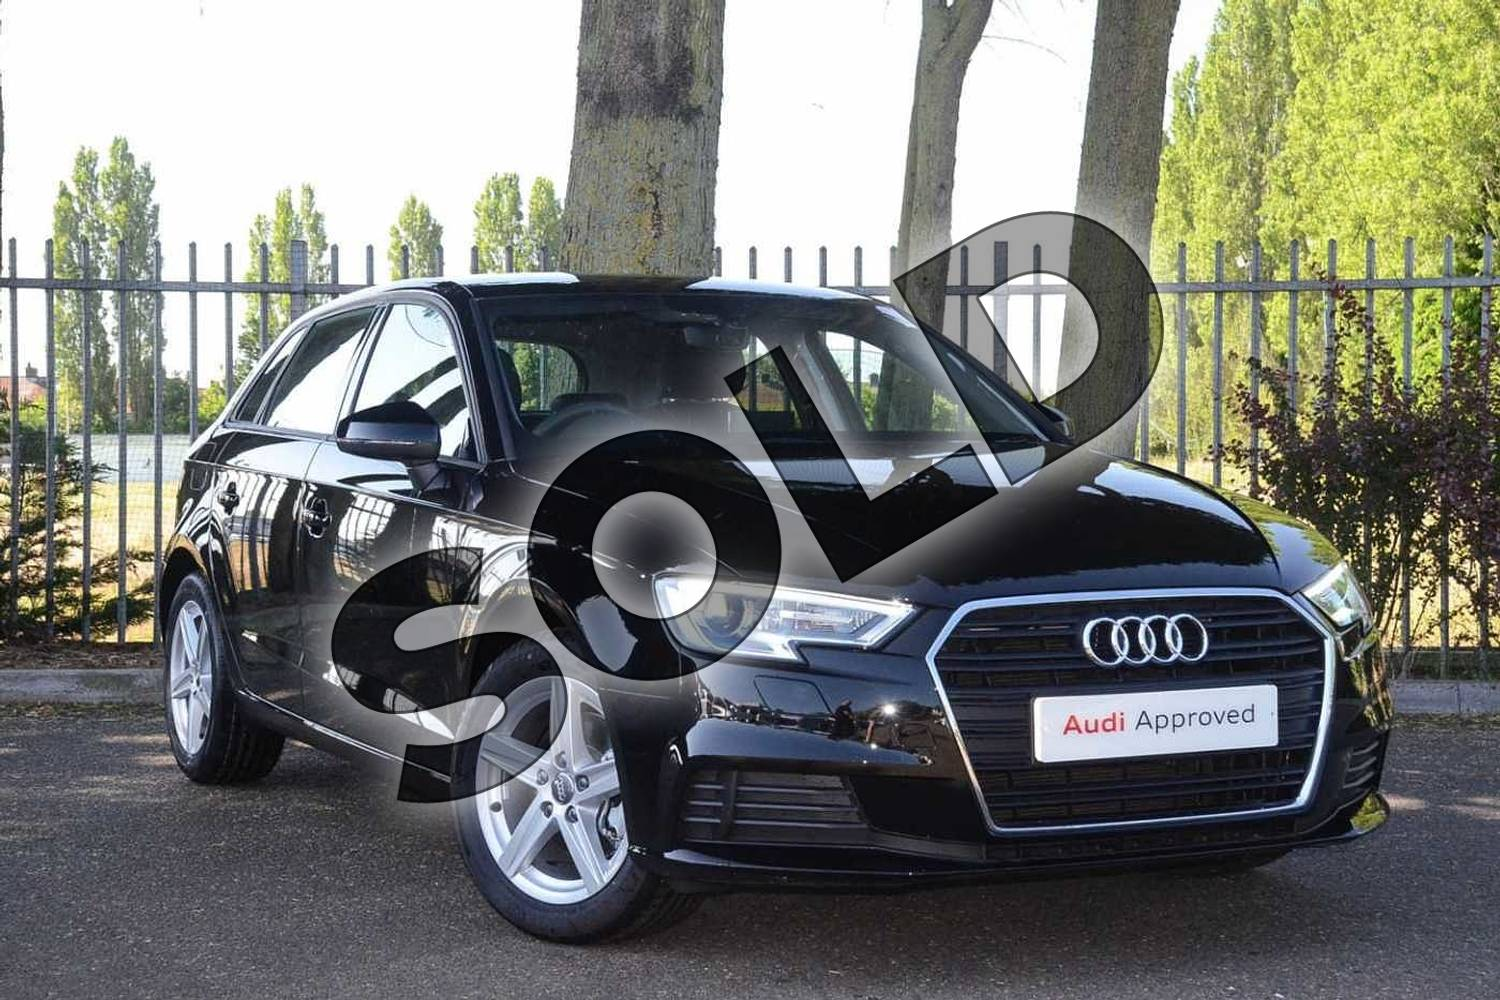 2019 Audi A3 Sportback 30 TFSI 116 SE Technik 5dr in Brilliant Black at Coventry Audi